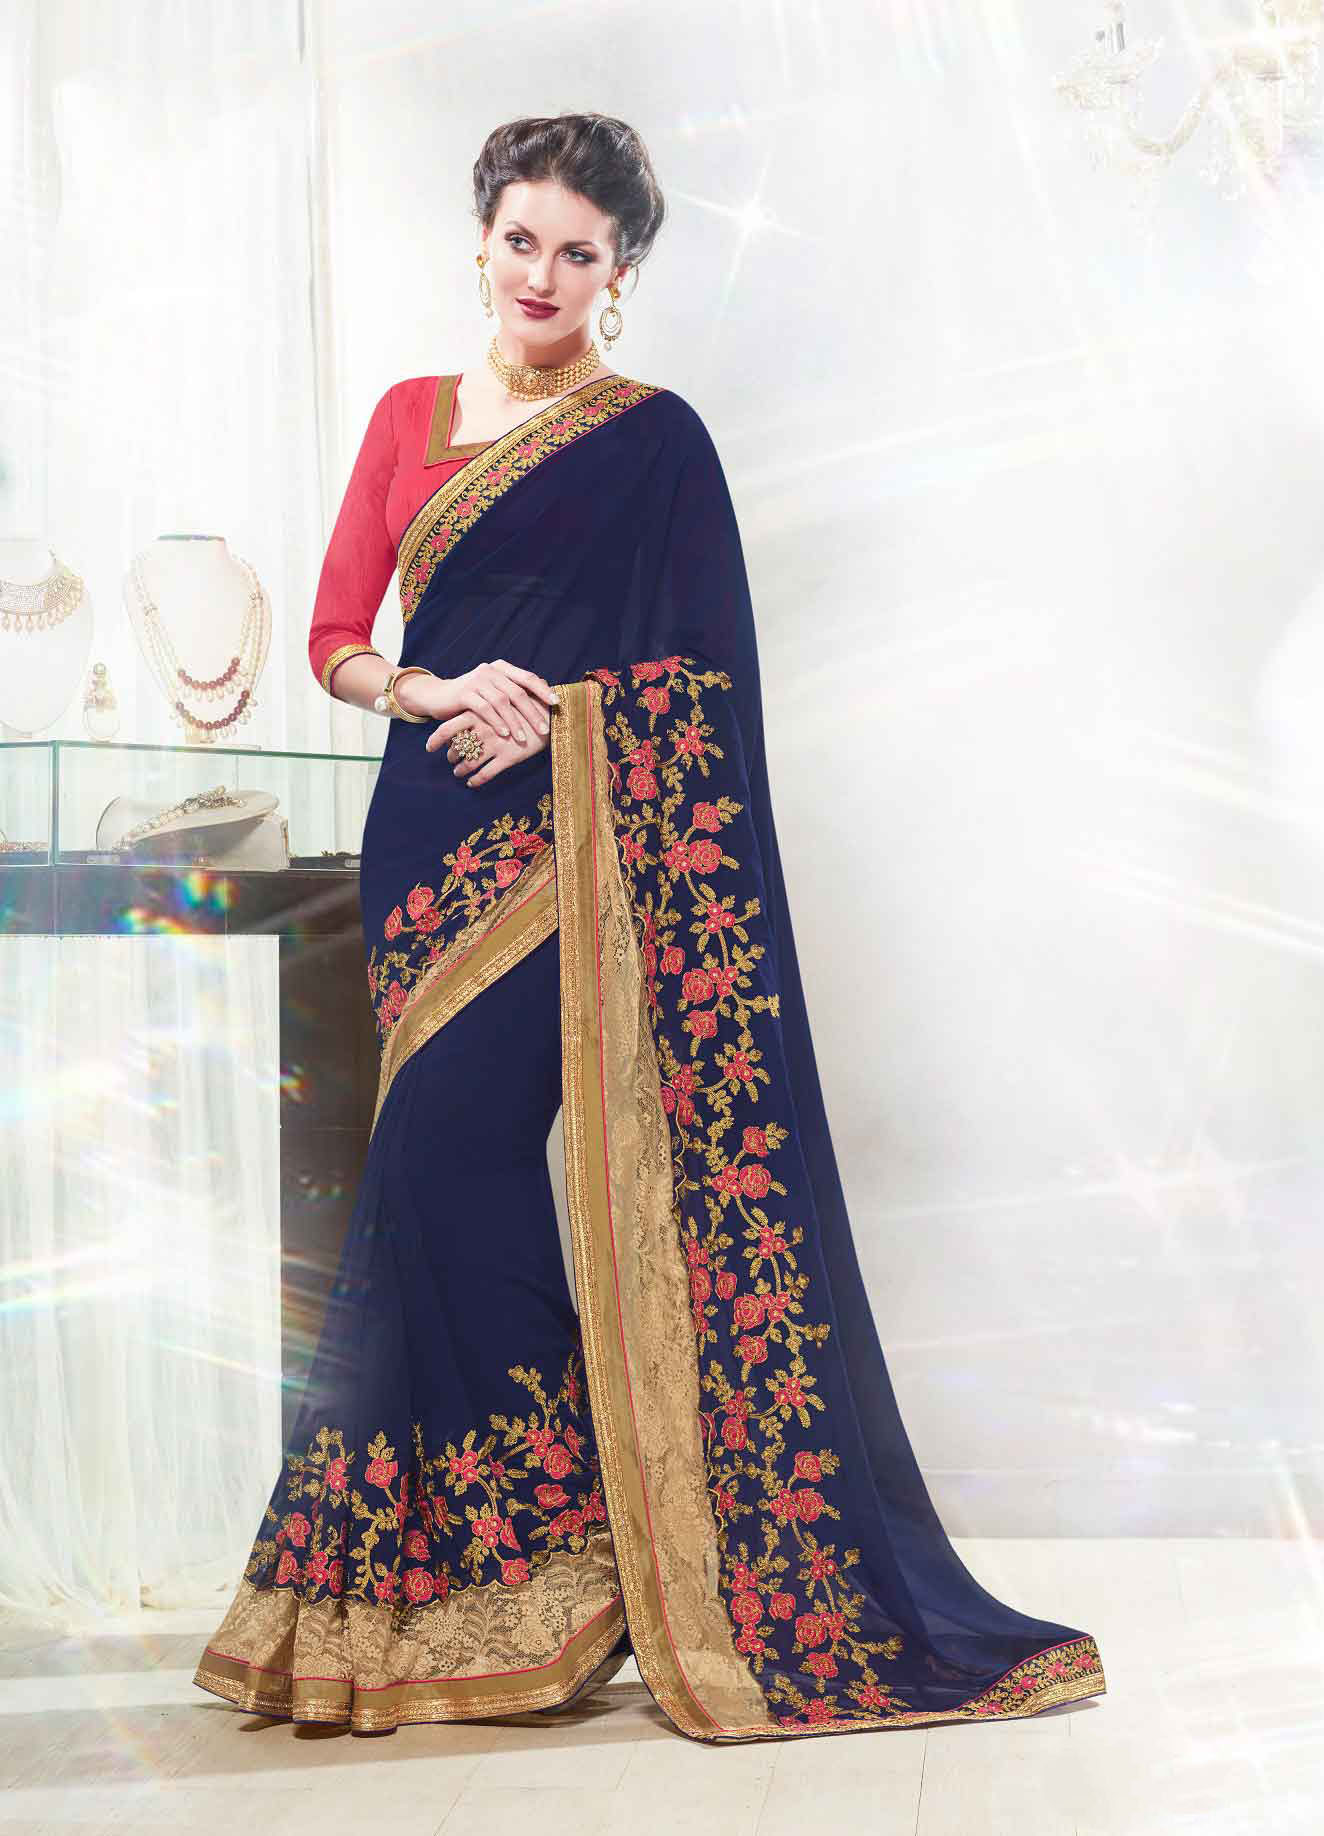 Embroidered Faux Georgette Saree (sari) in Navyblue